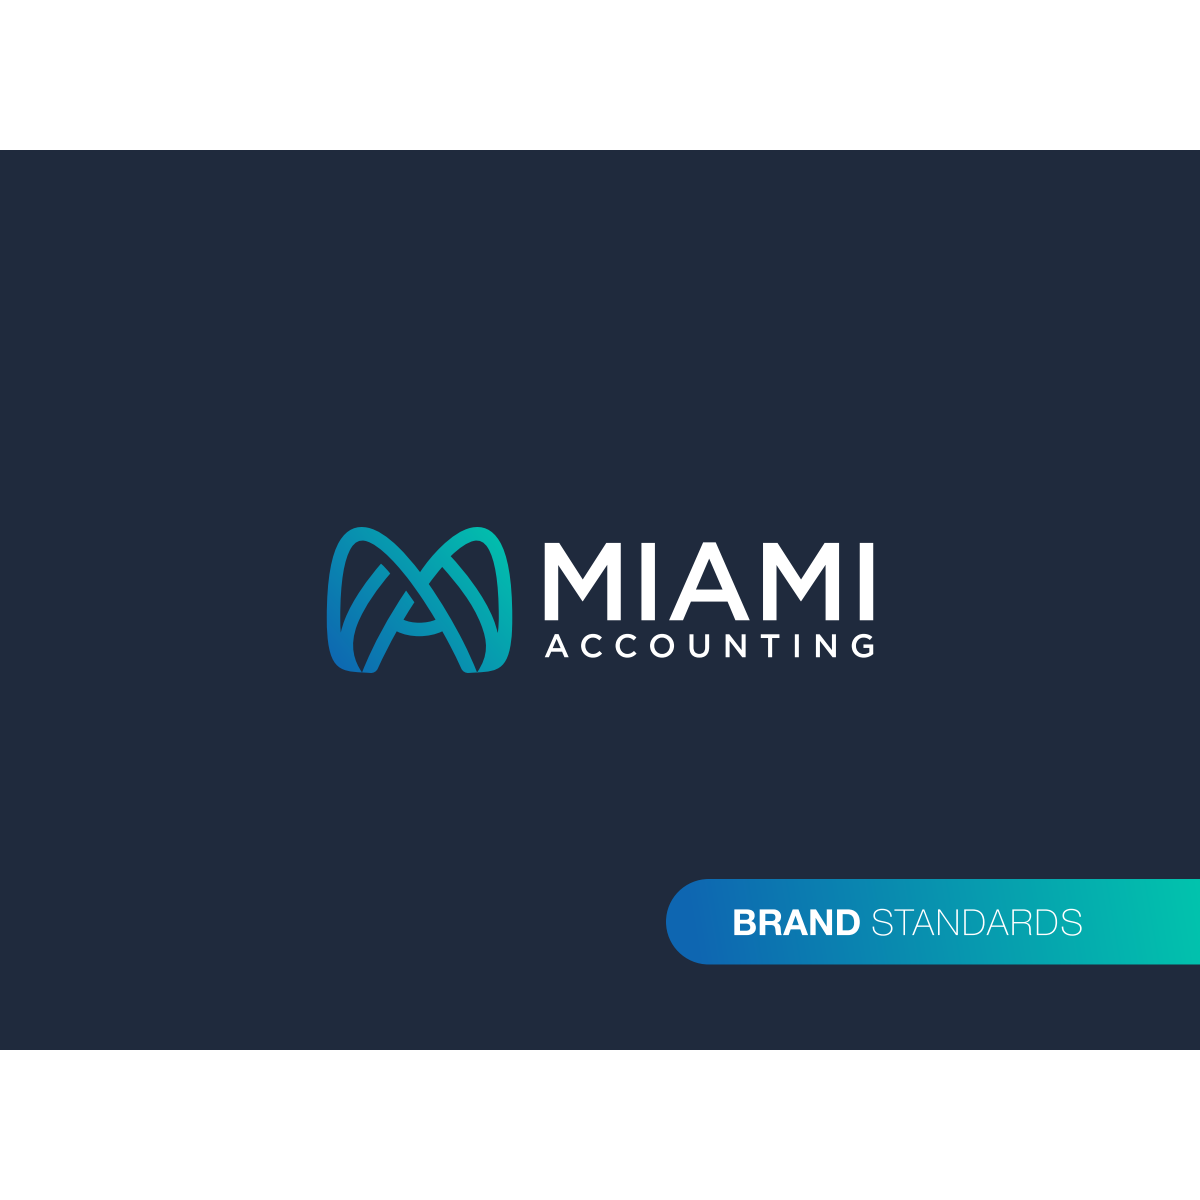 Brand Guidelines for Miami Accounting